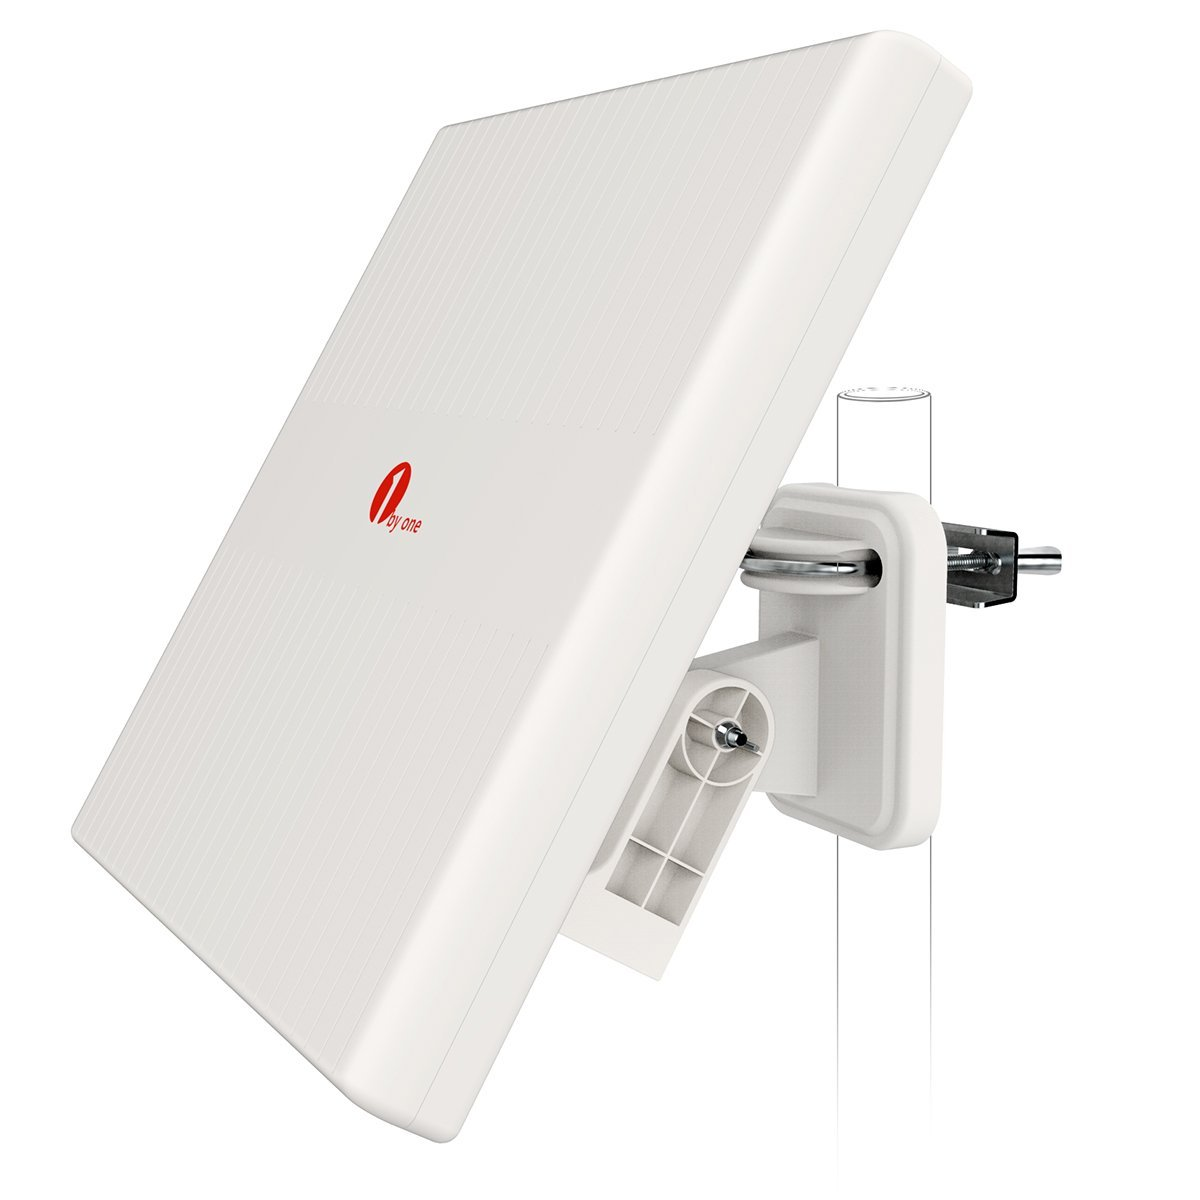 1byone omni directional outdoor antenna